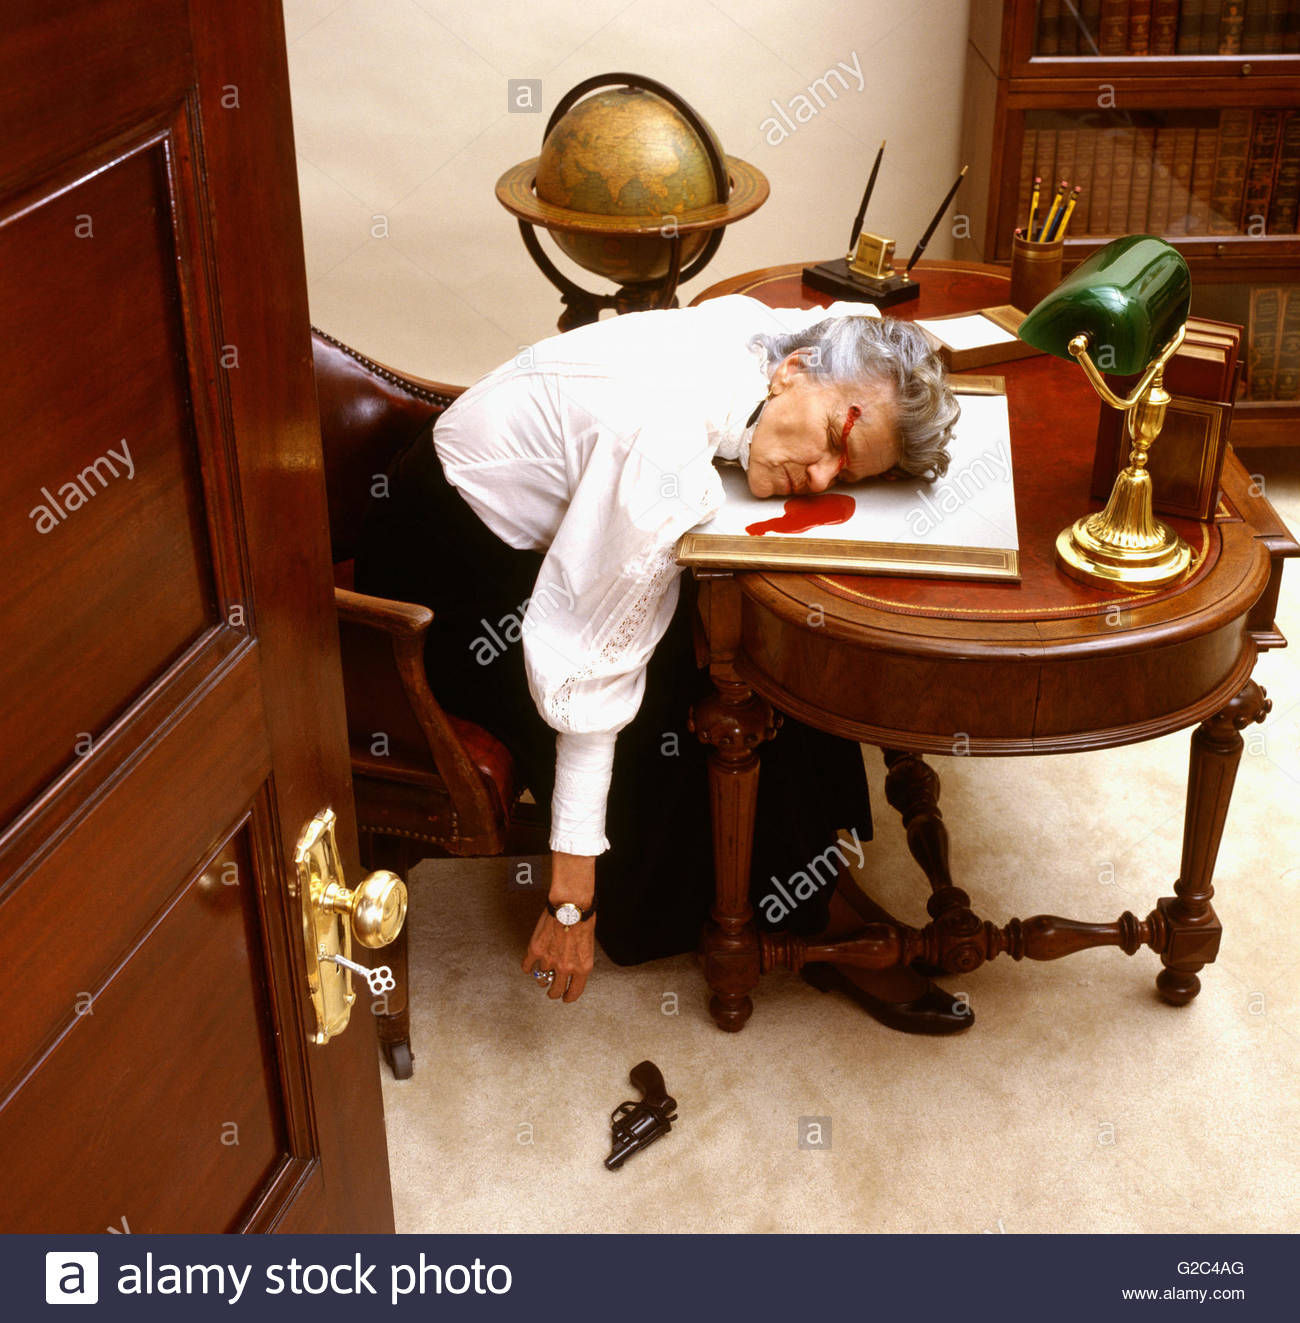 old lady committed suicide at work desk - Old Lady Committed Suicide At Work Desk Stock Photo, Royalty Free